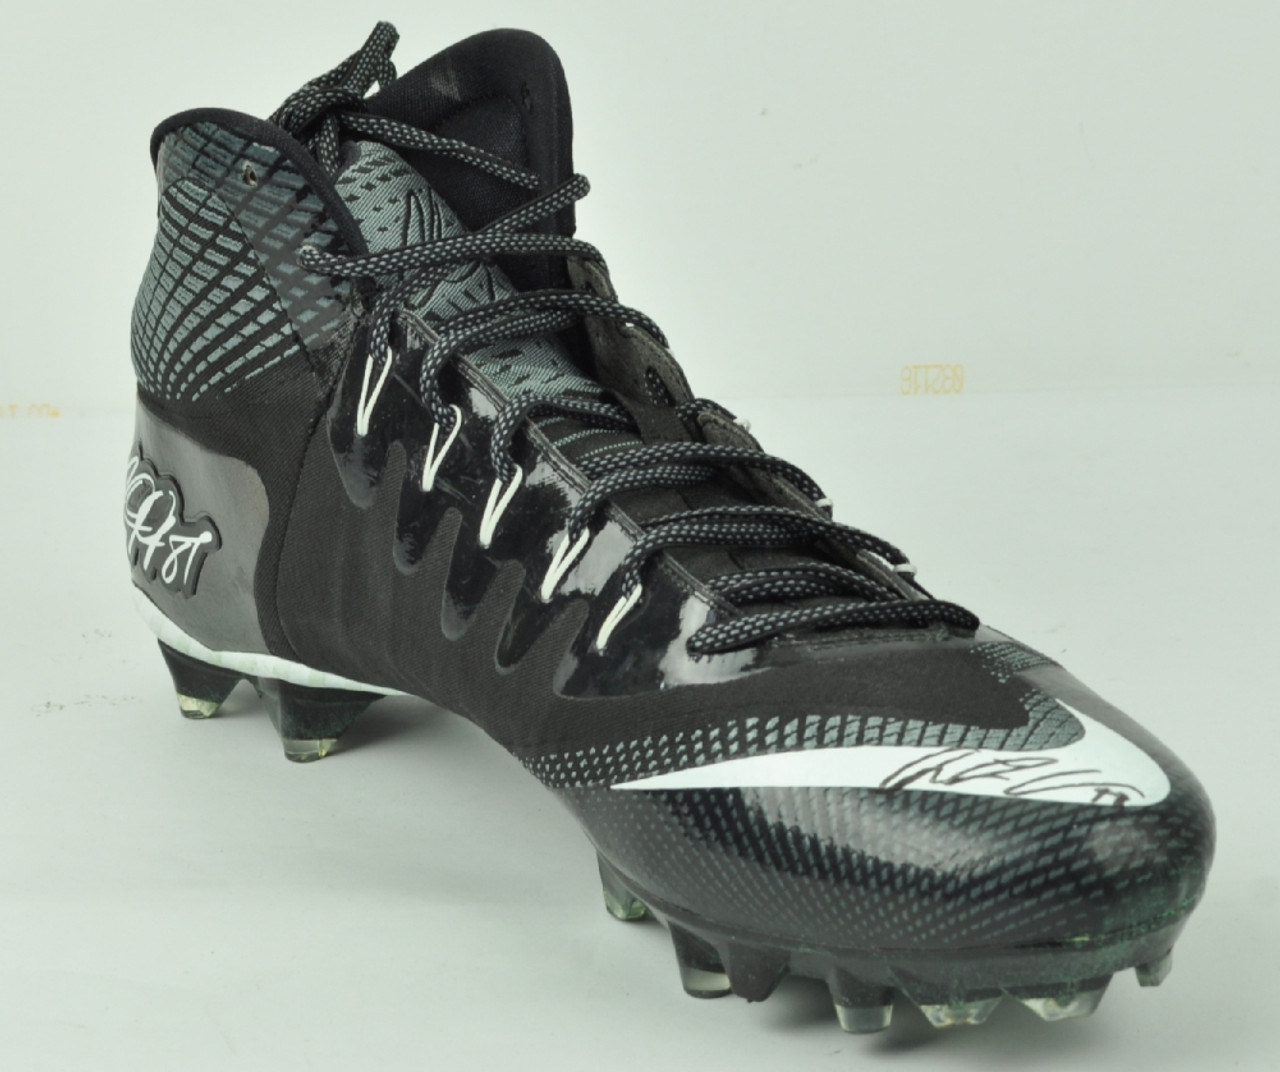 8334a74d NFL Miami Dolphins Linebacker Kiko Alonso 47 Signed Autographed Authentic  Player Black Nike Cleat JSA